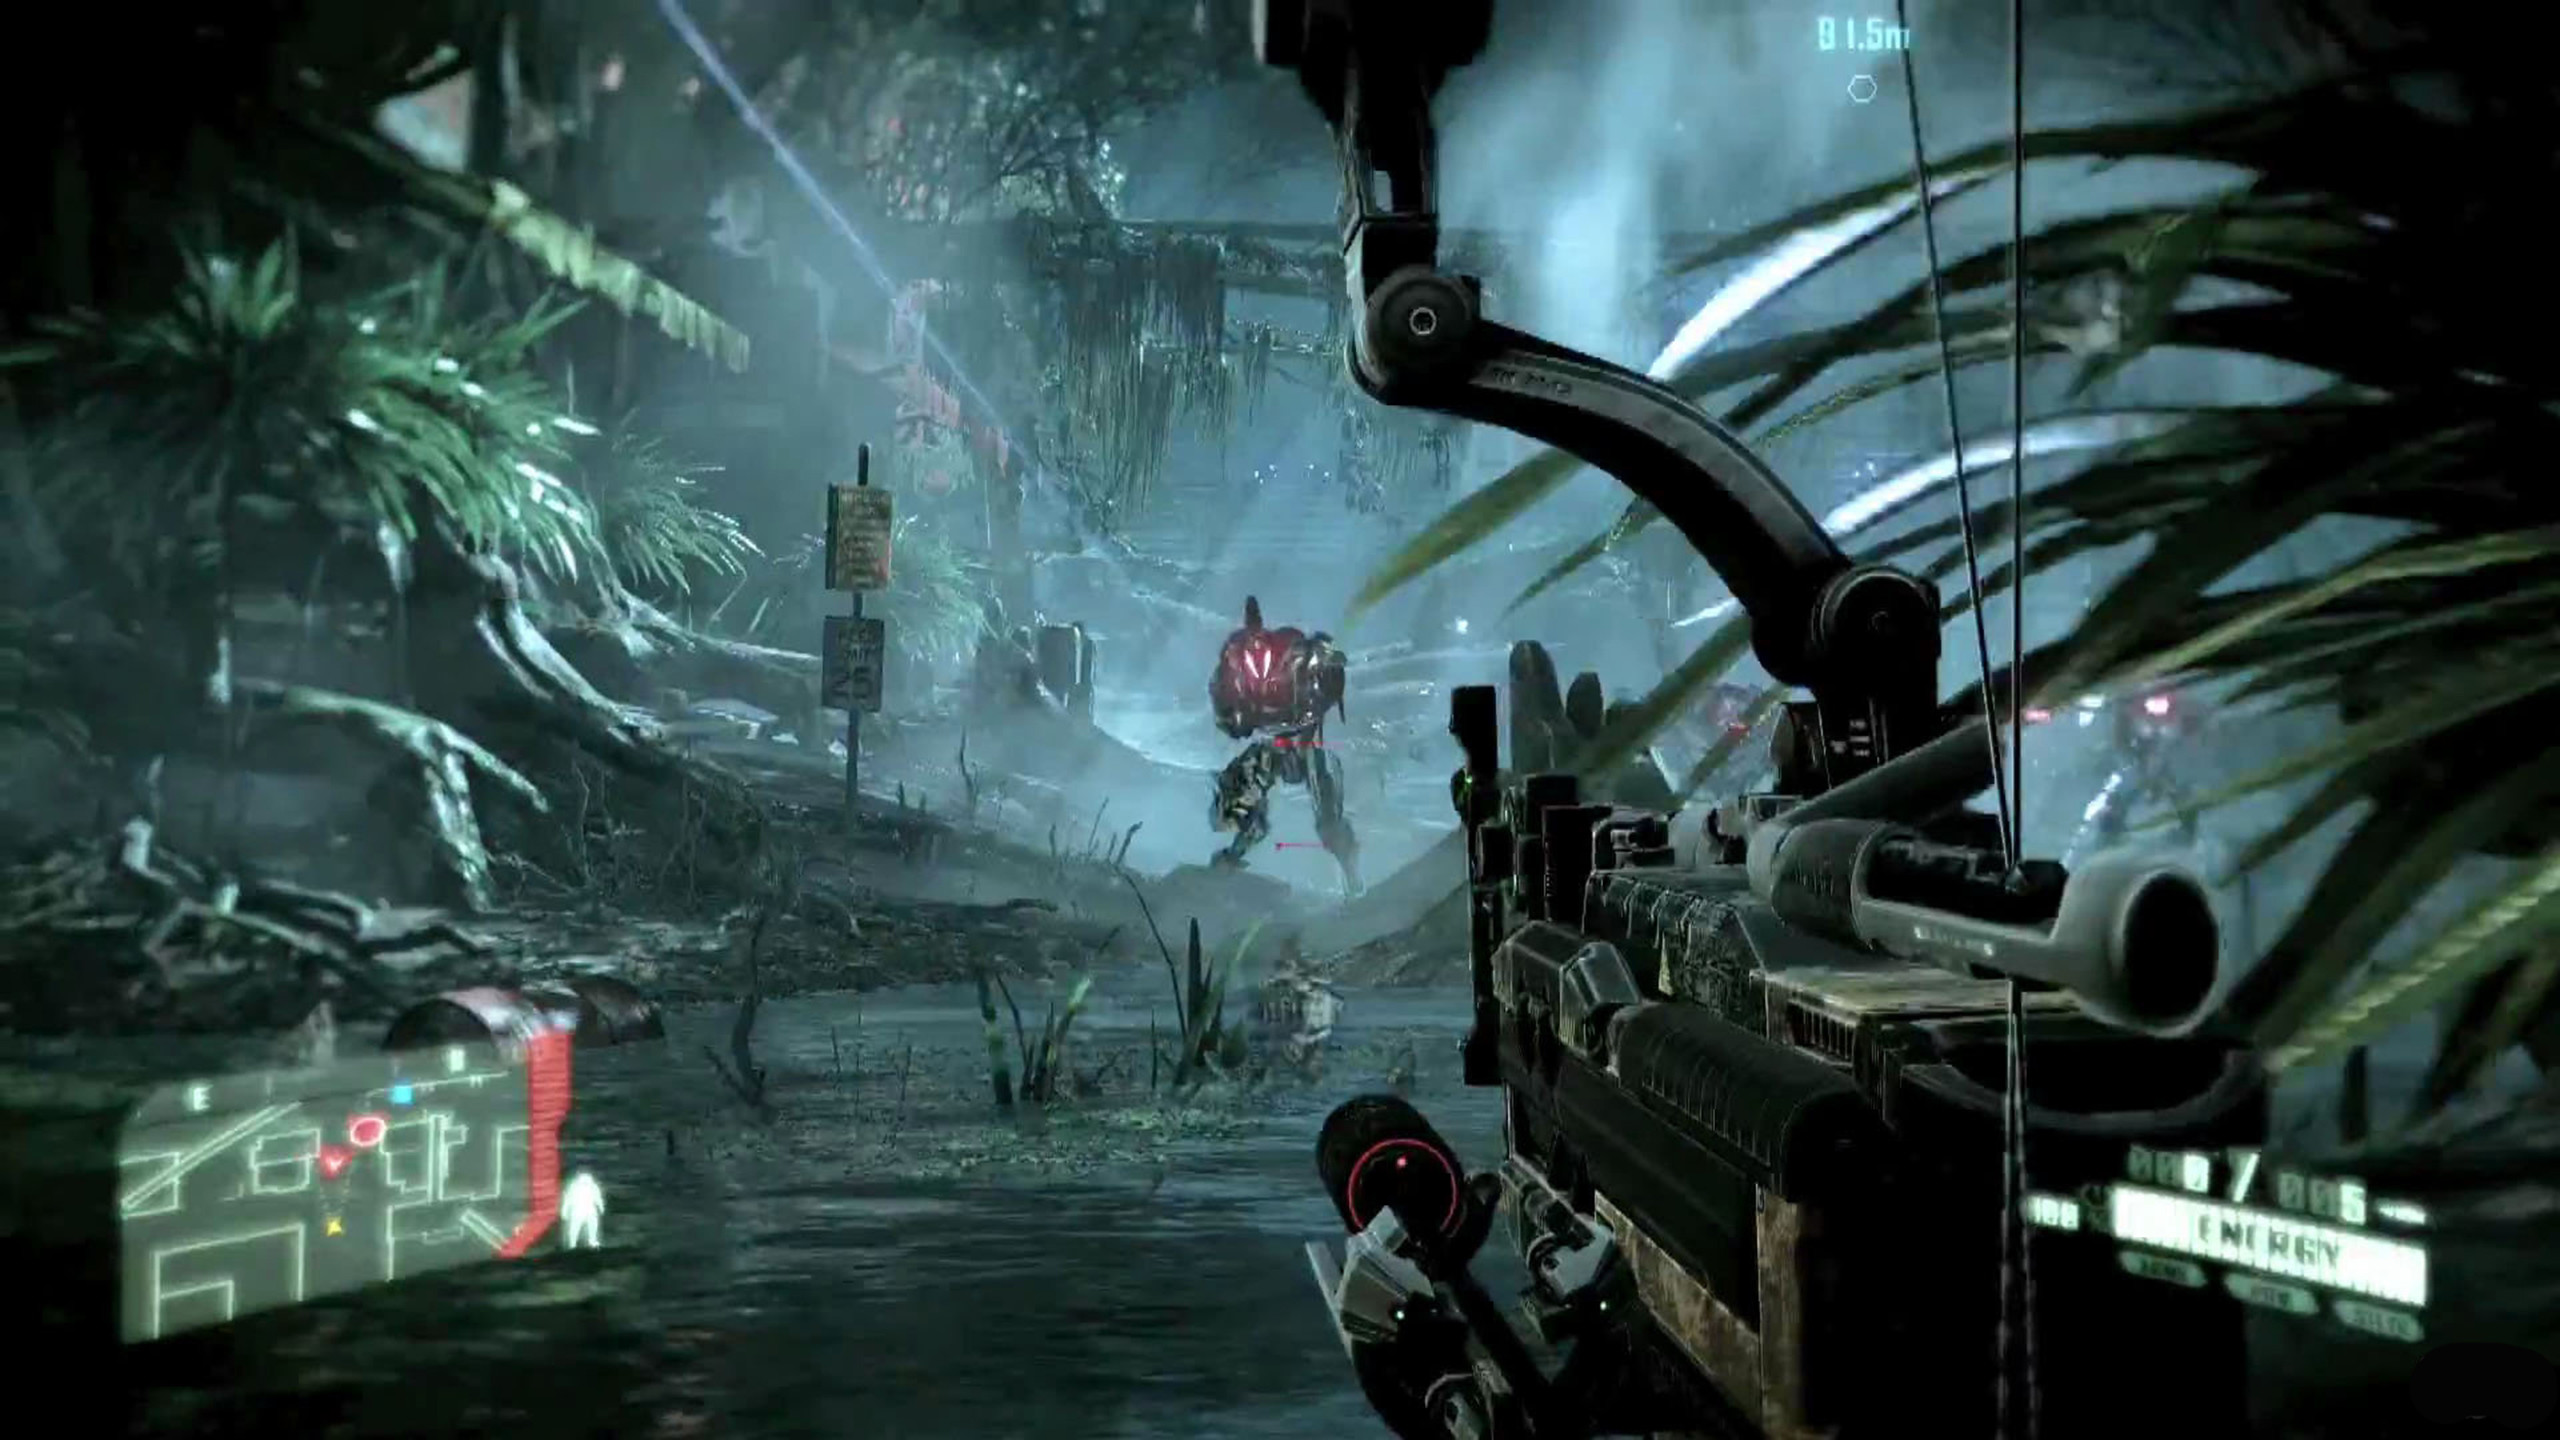 2560x1440 Crysis 3 HD Wallpaper | Background Image |  | ID:263442 - Wallpaper  Abyss